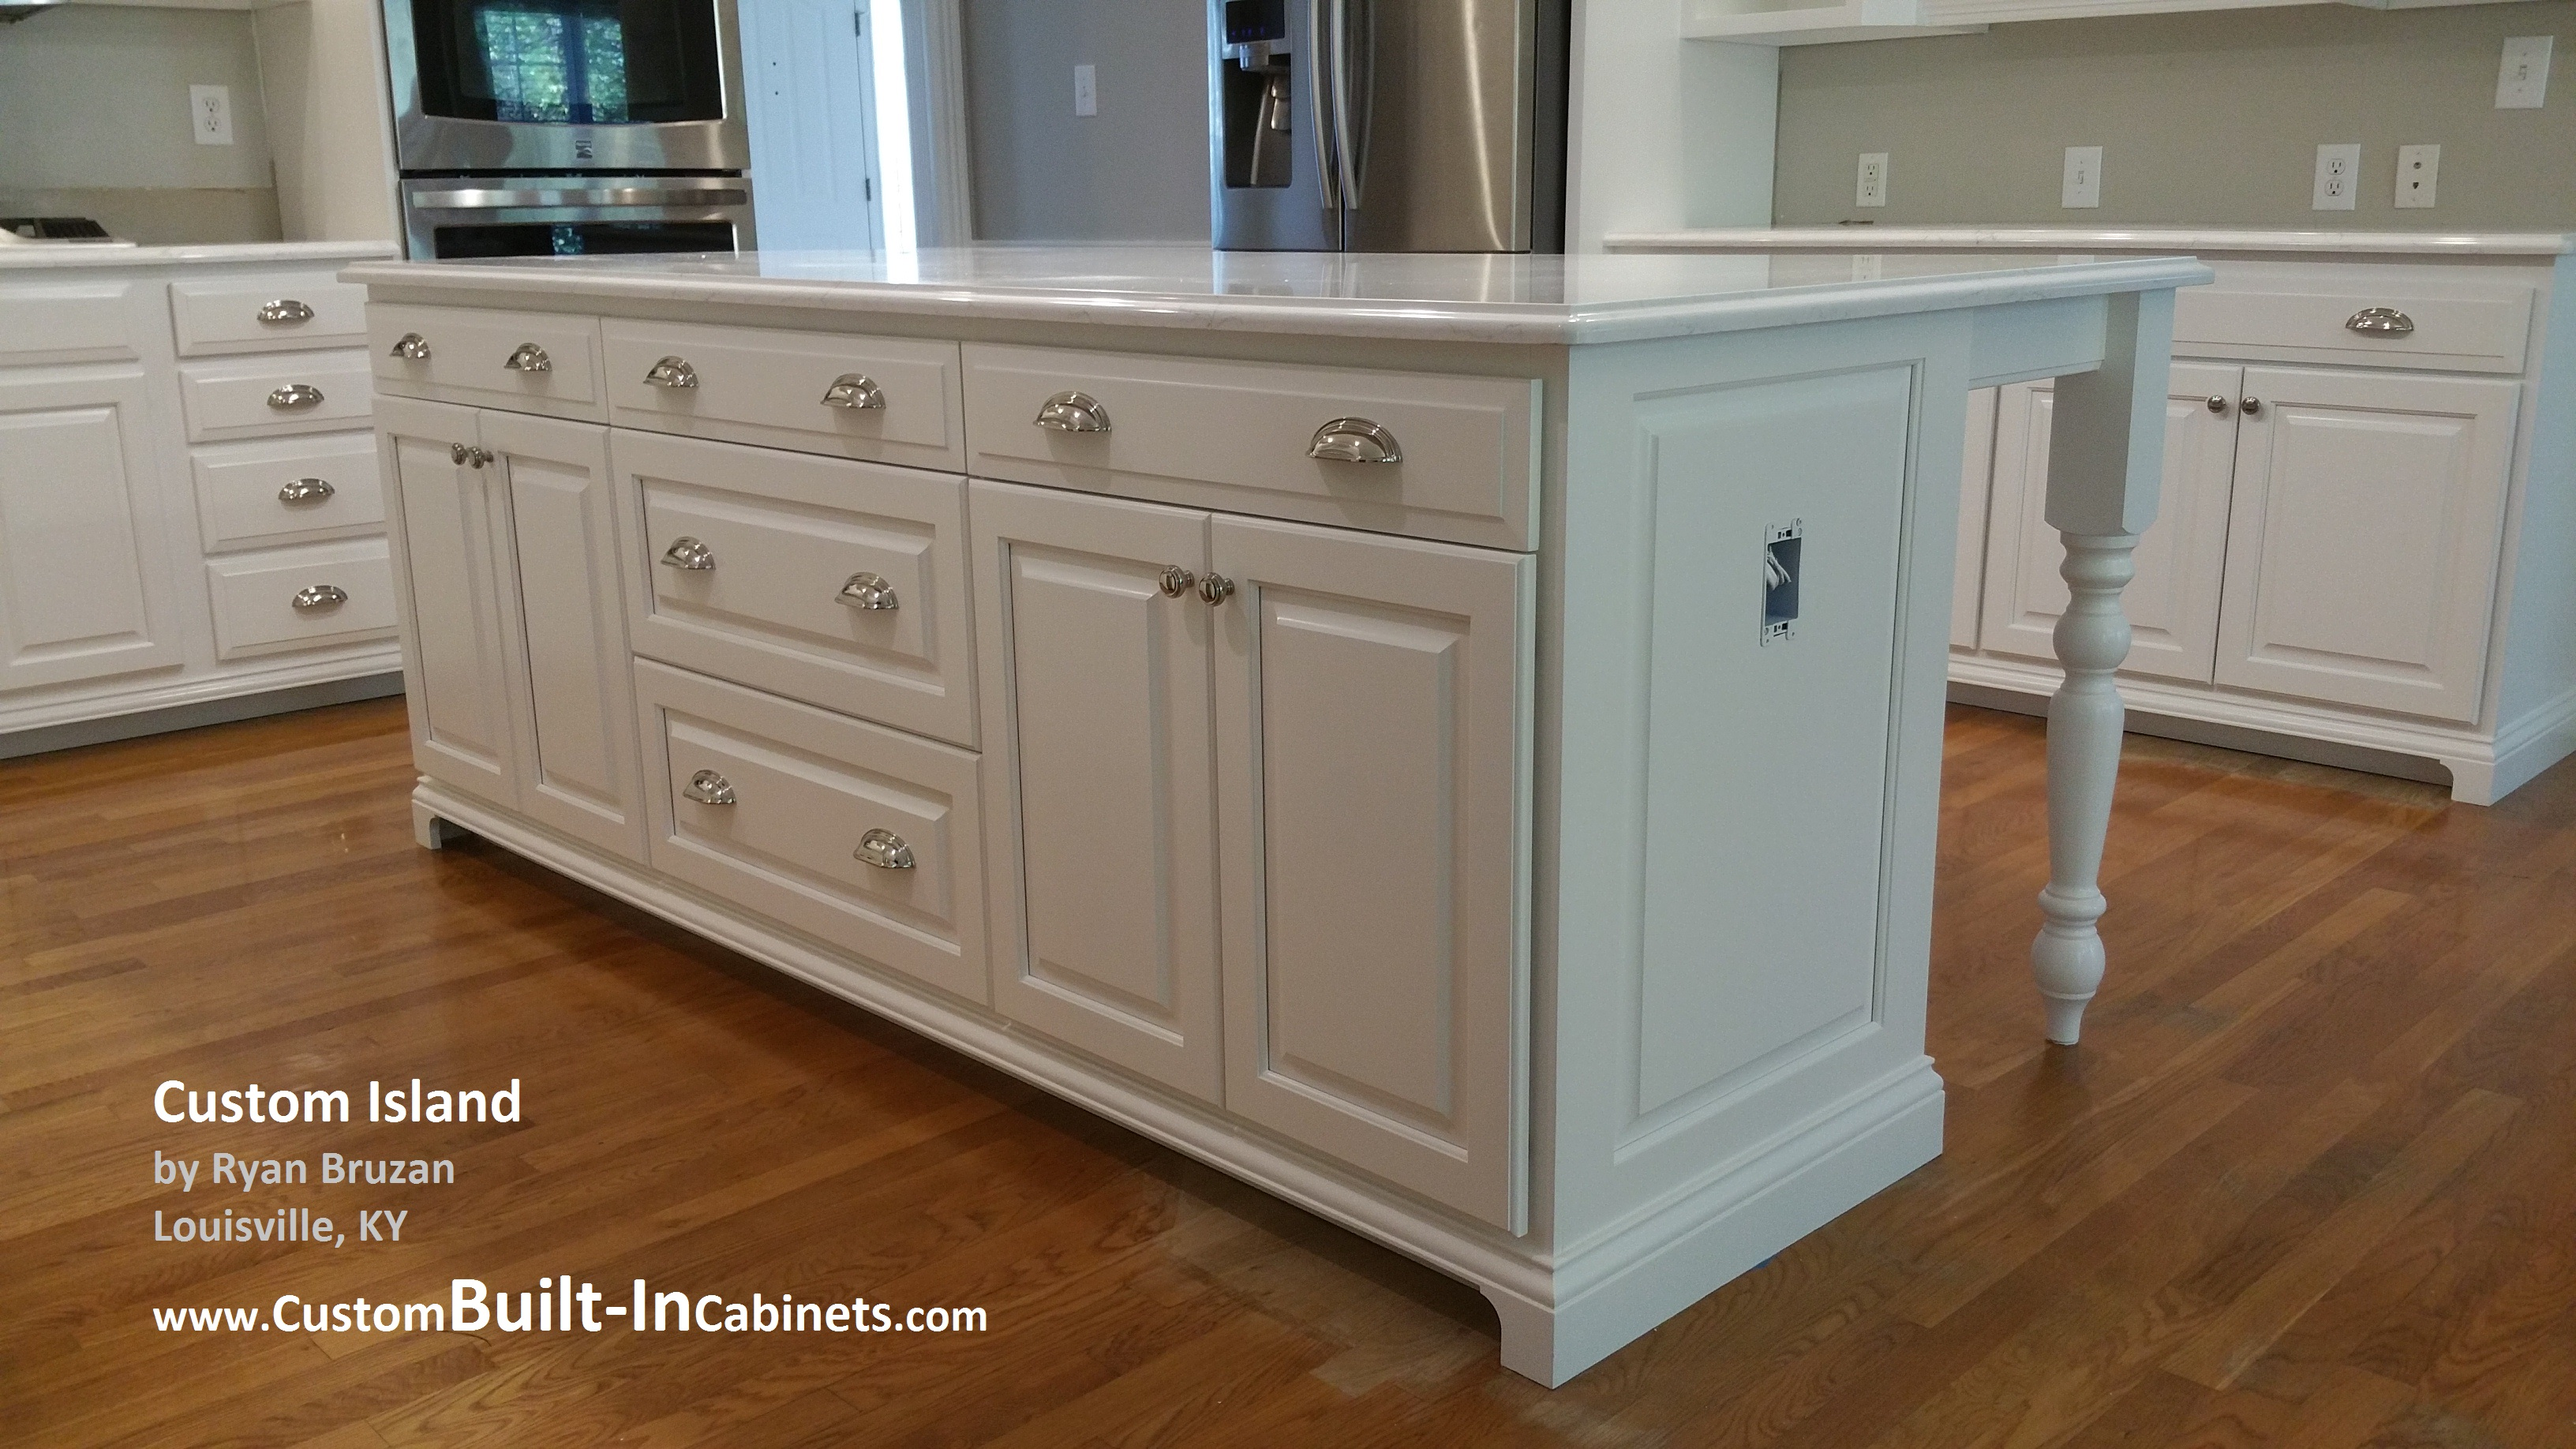 Custom built in cabinet services around louisville ky - Custom made cabinet ...